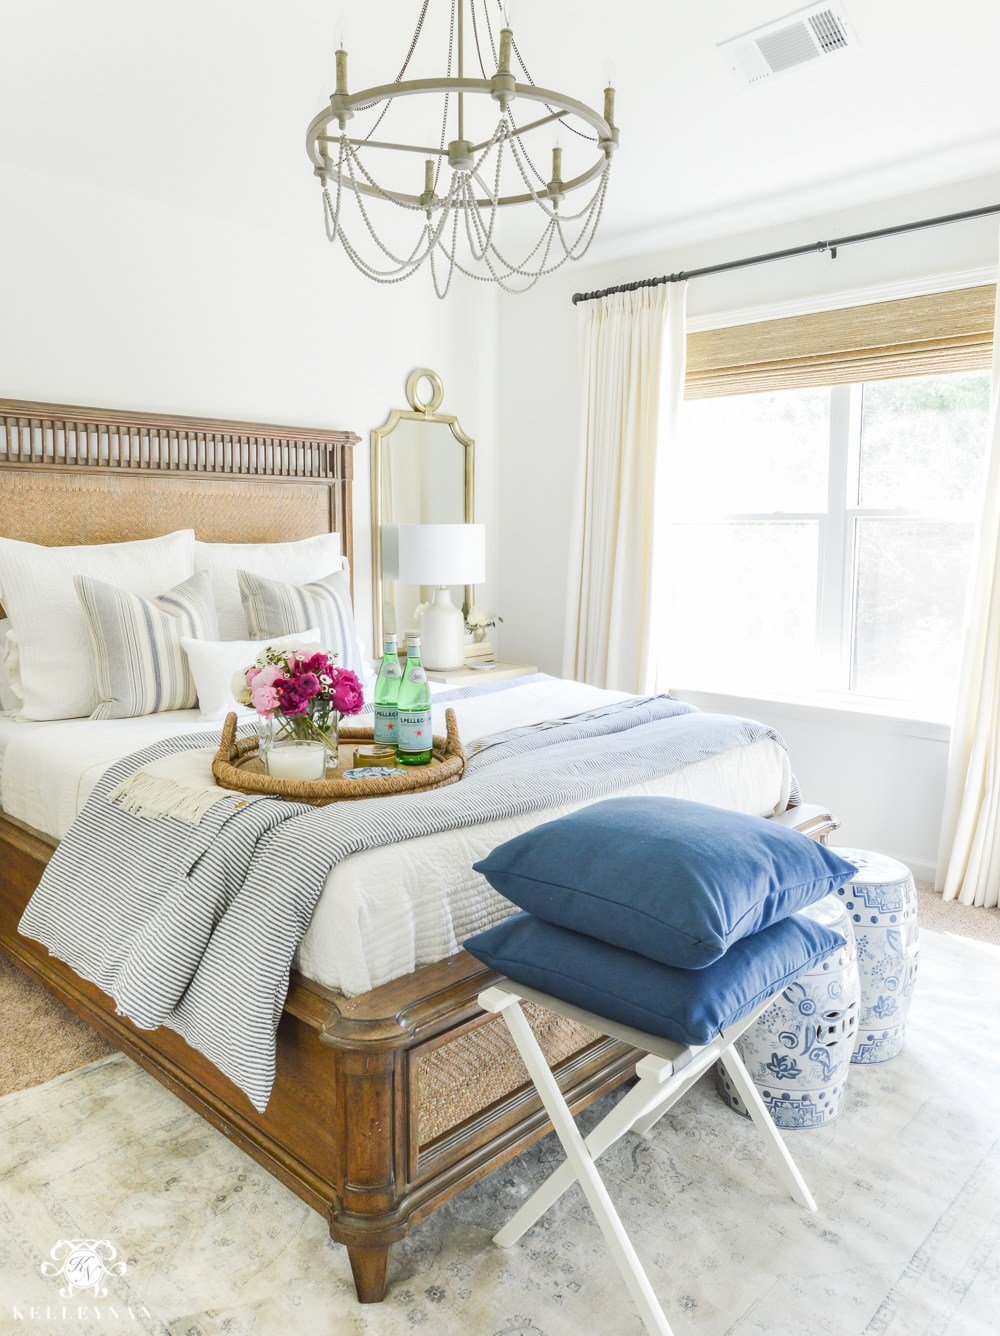 Best 8 Guest Bedroom Essentials And Luxuries Your Company Will With Pictures